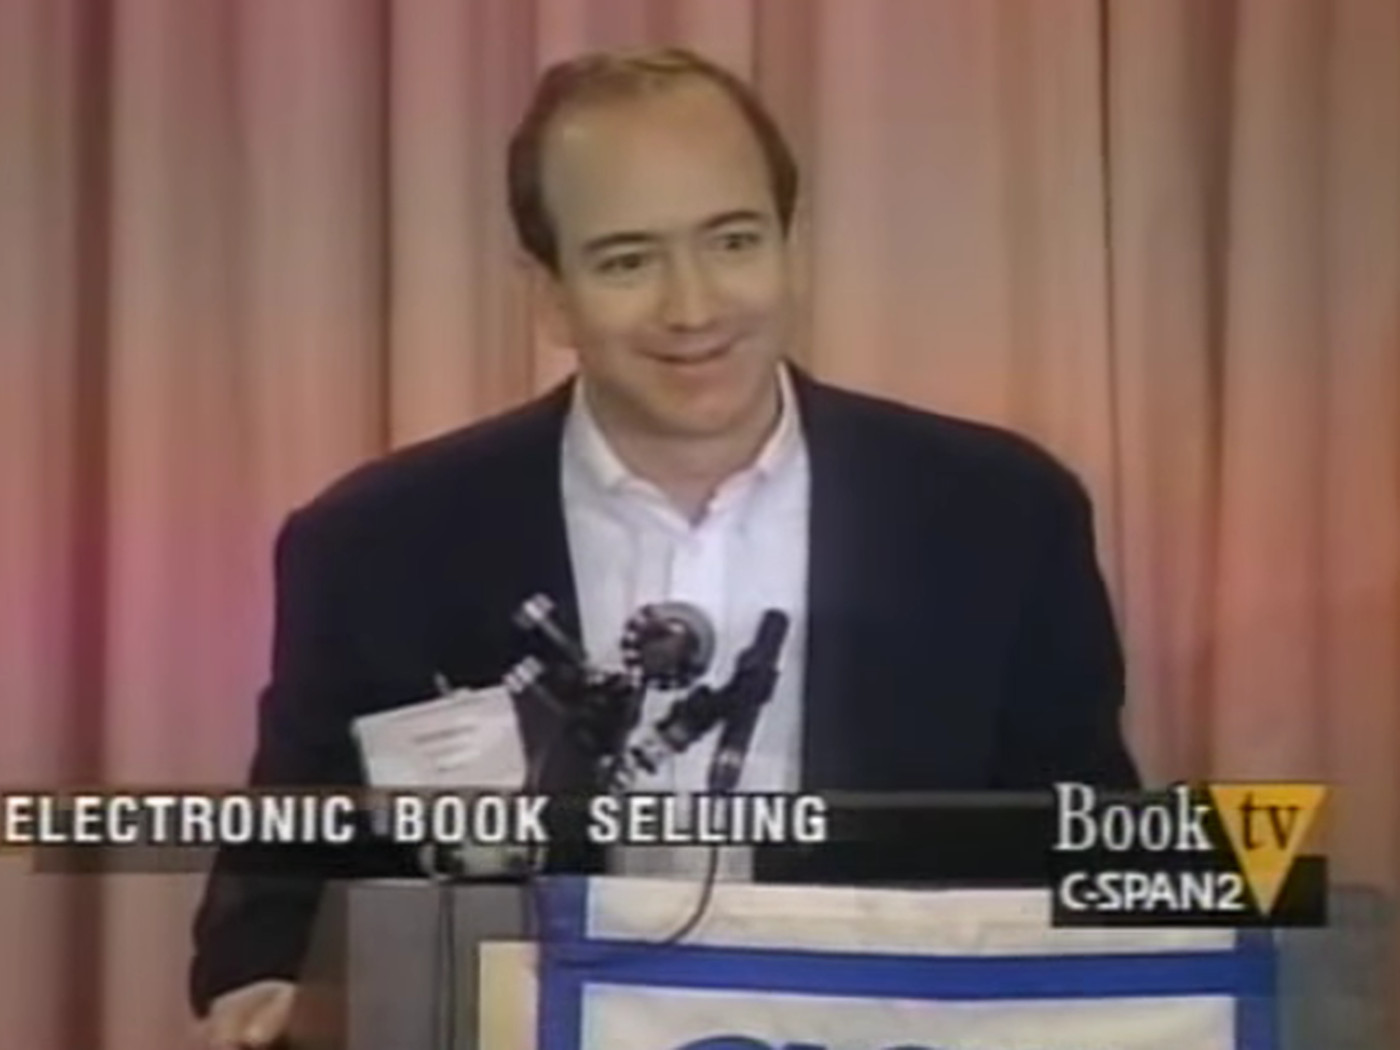 watch jeff bezos lay out his grand vision for amazons future dominance in this 1999 video recode